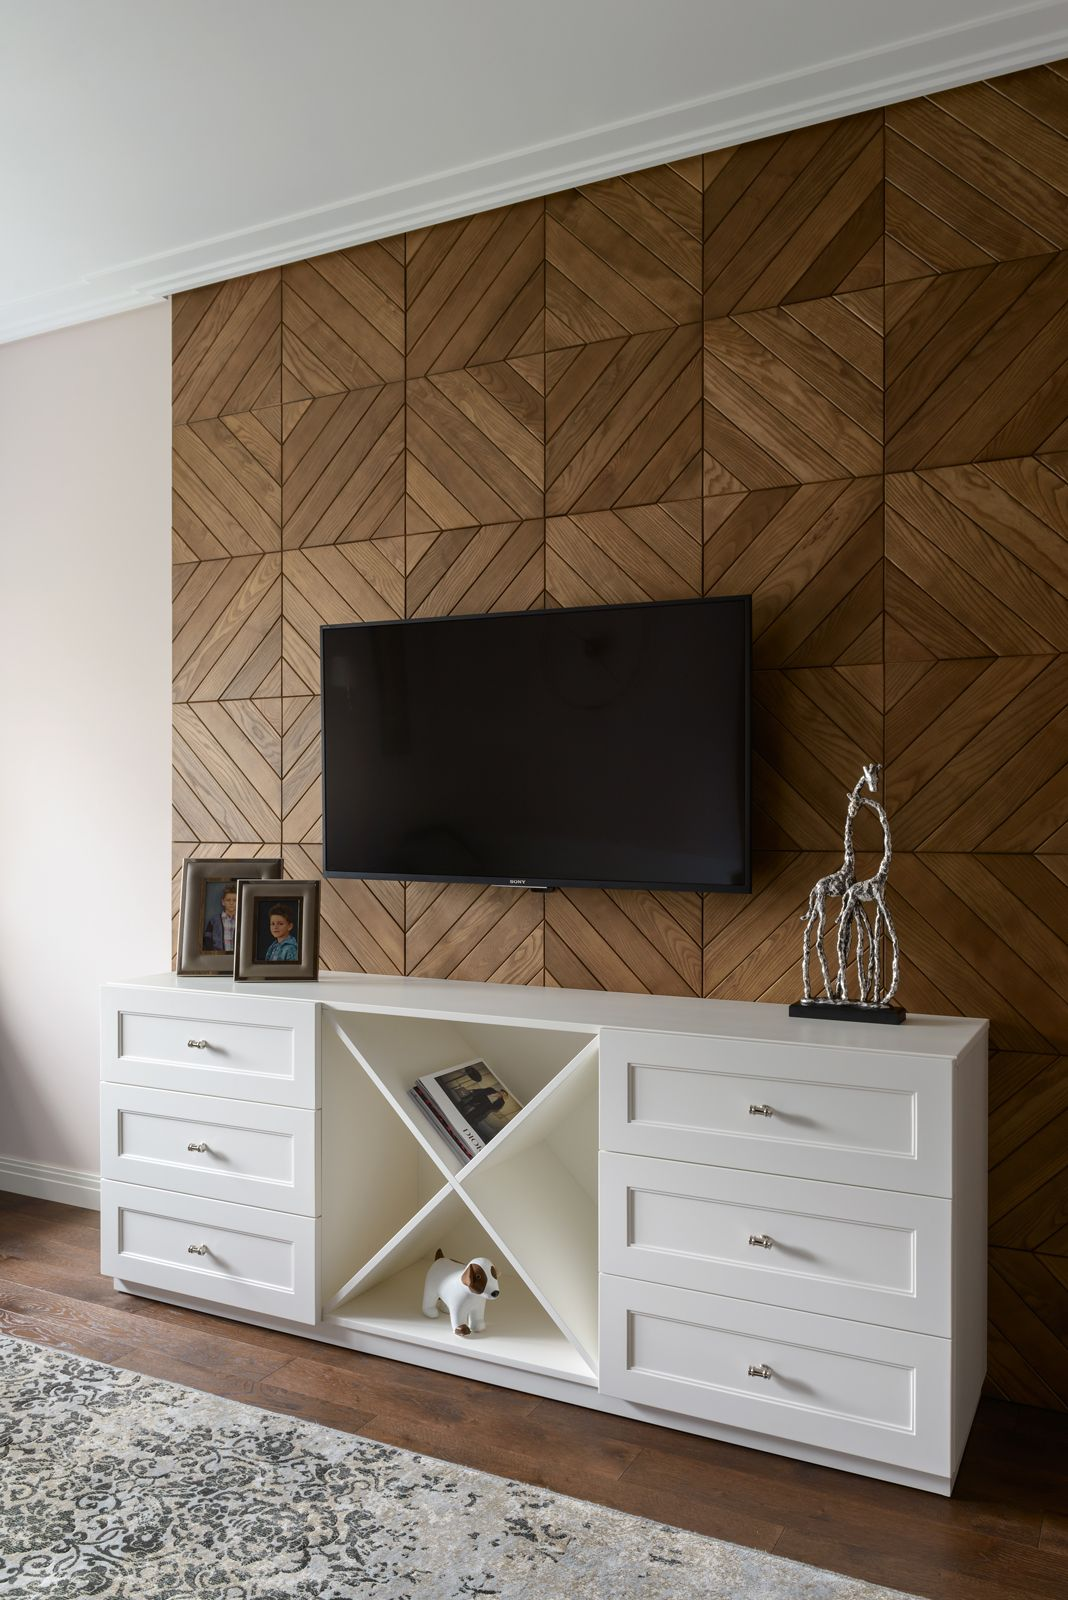 Decorating Living Room With Wooden Panels Panelling With Parquet Wall Paneling Ideas Living Room Wooden Wall Panels Living Rooms Wall Panel Design